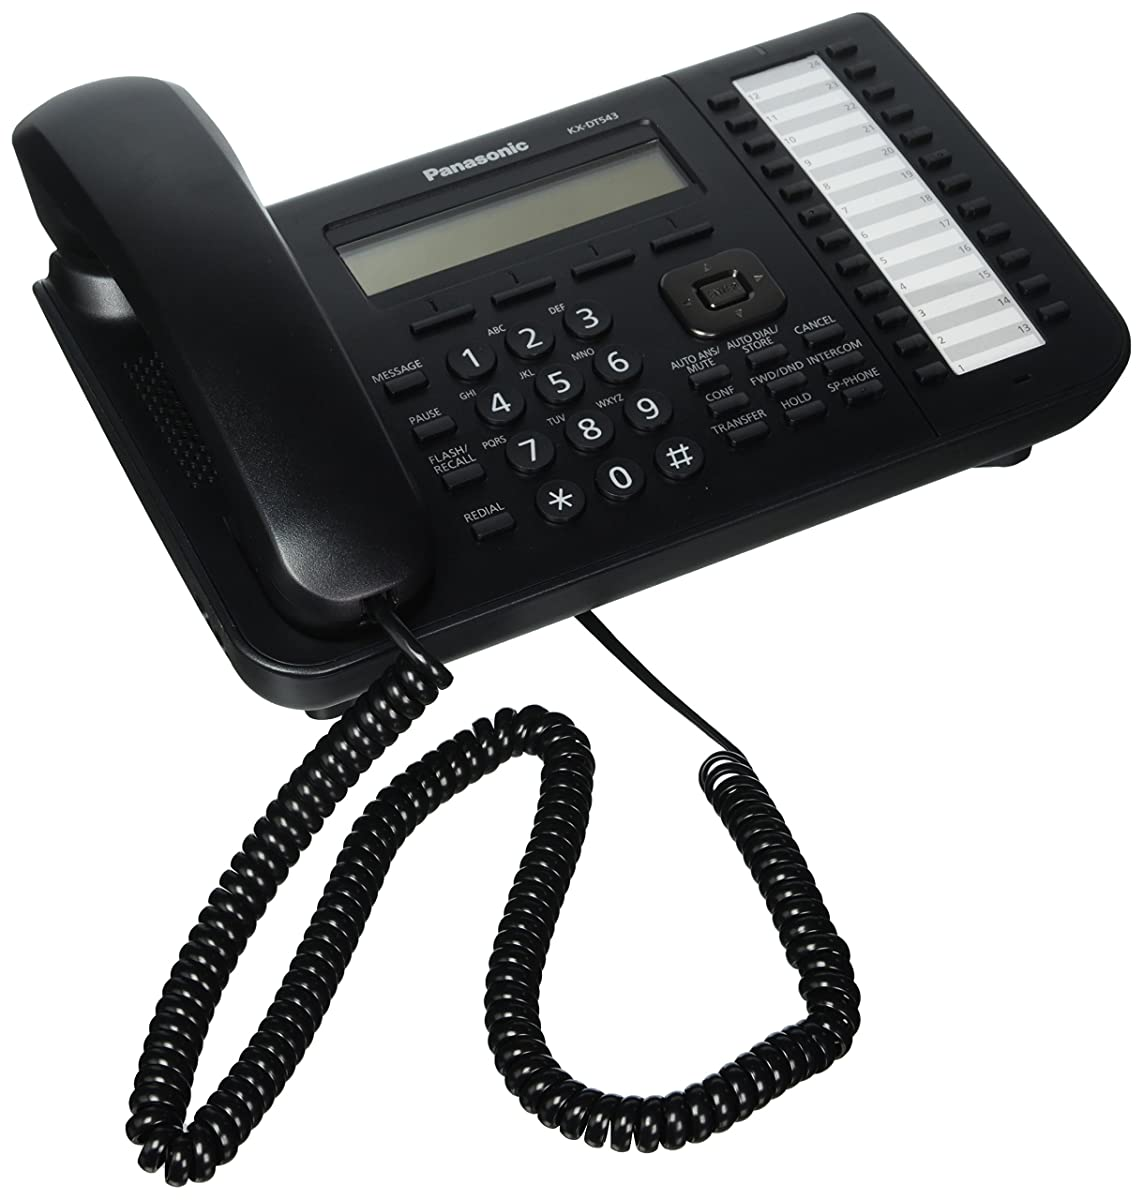 Panasonic KX-DT543-B Digital Telephone